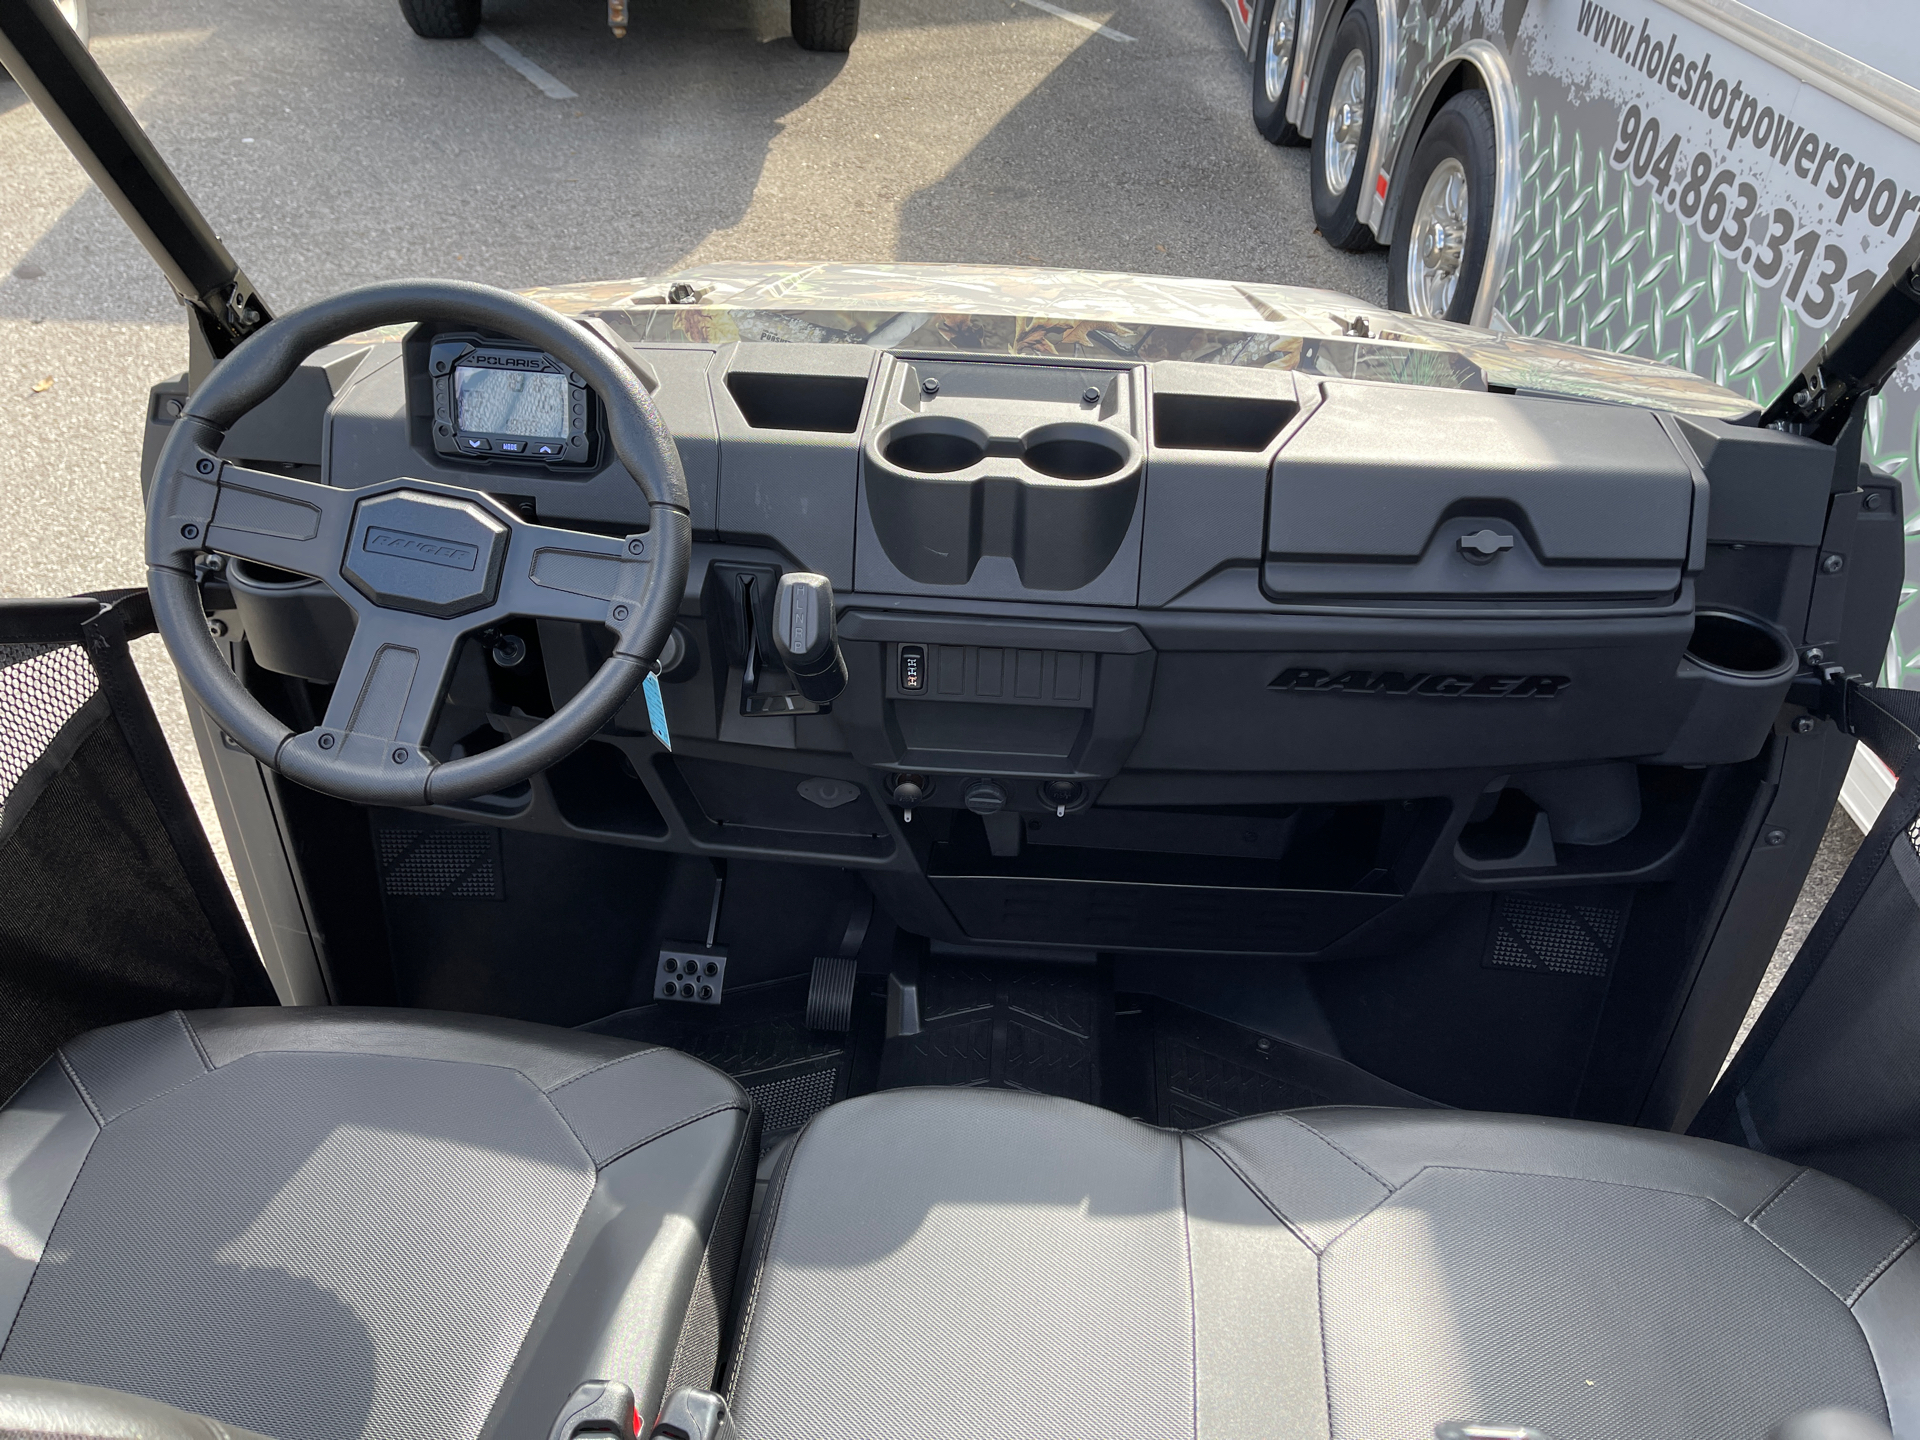 2021 Polaris Ranger 1000 Premium in Fleming Island, Florida - Photo 3